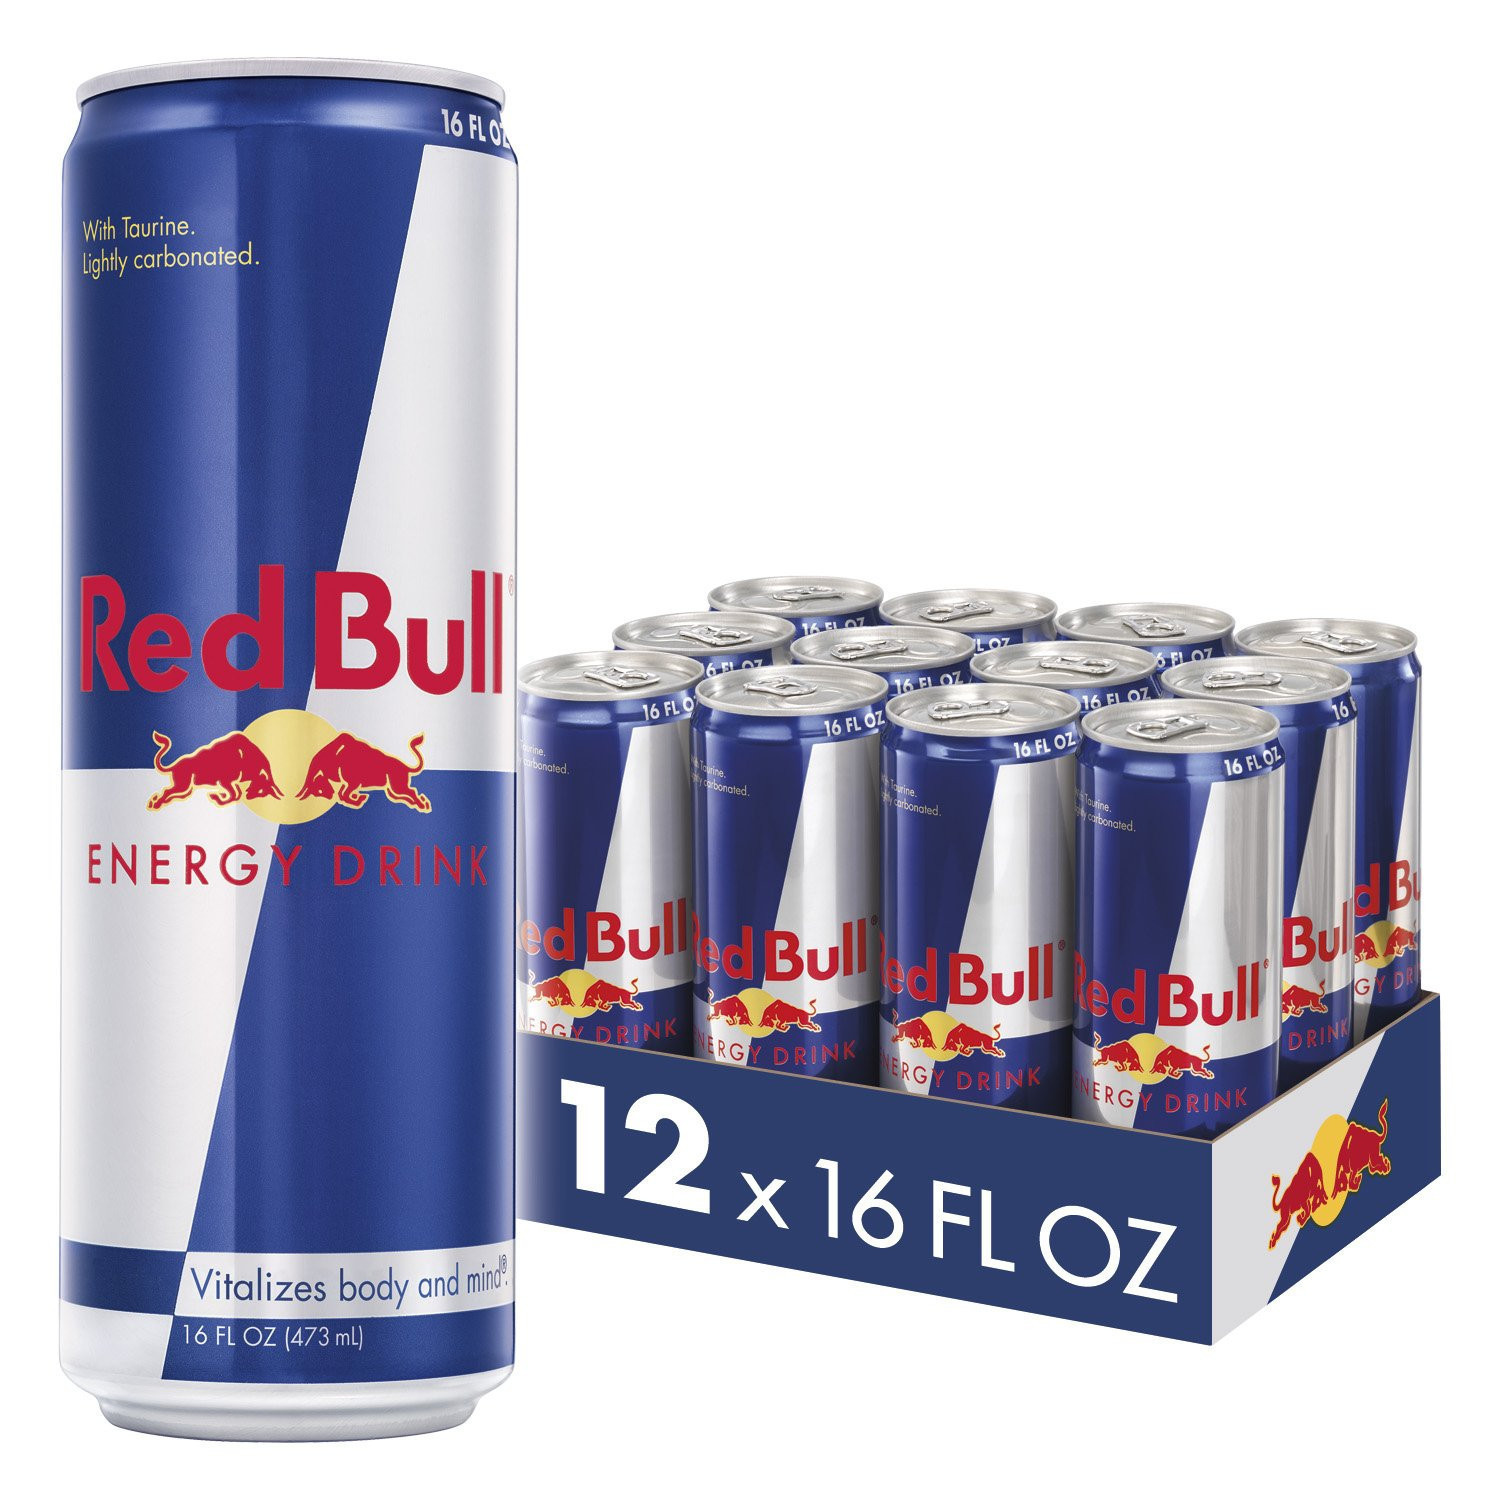 Austria Red bull Energy Drink For Export